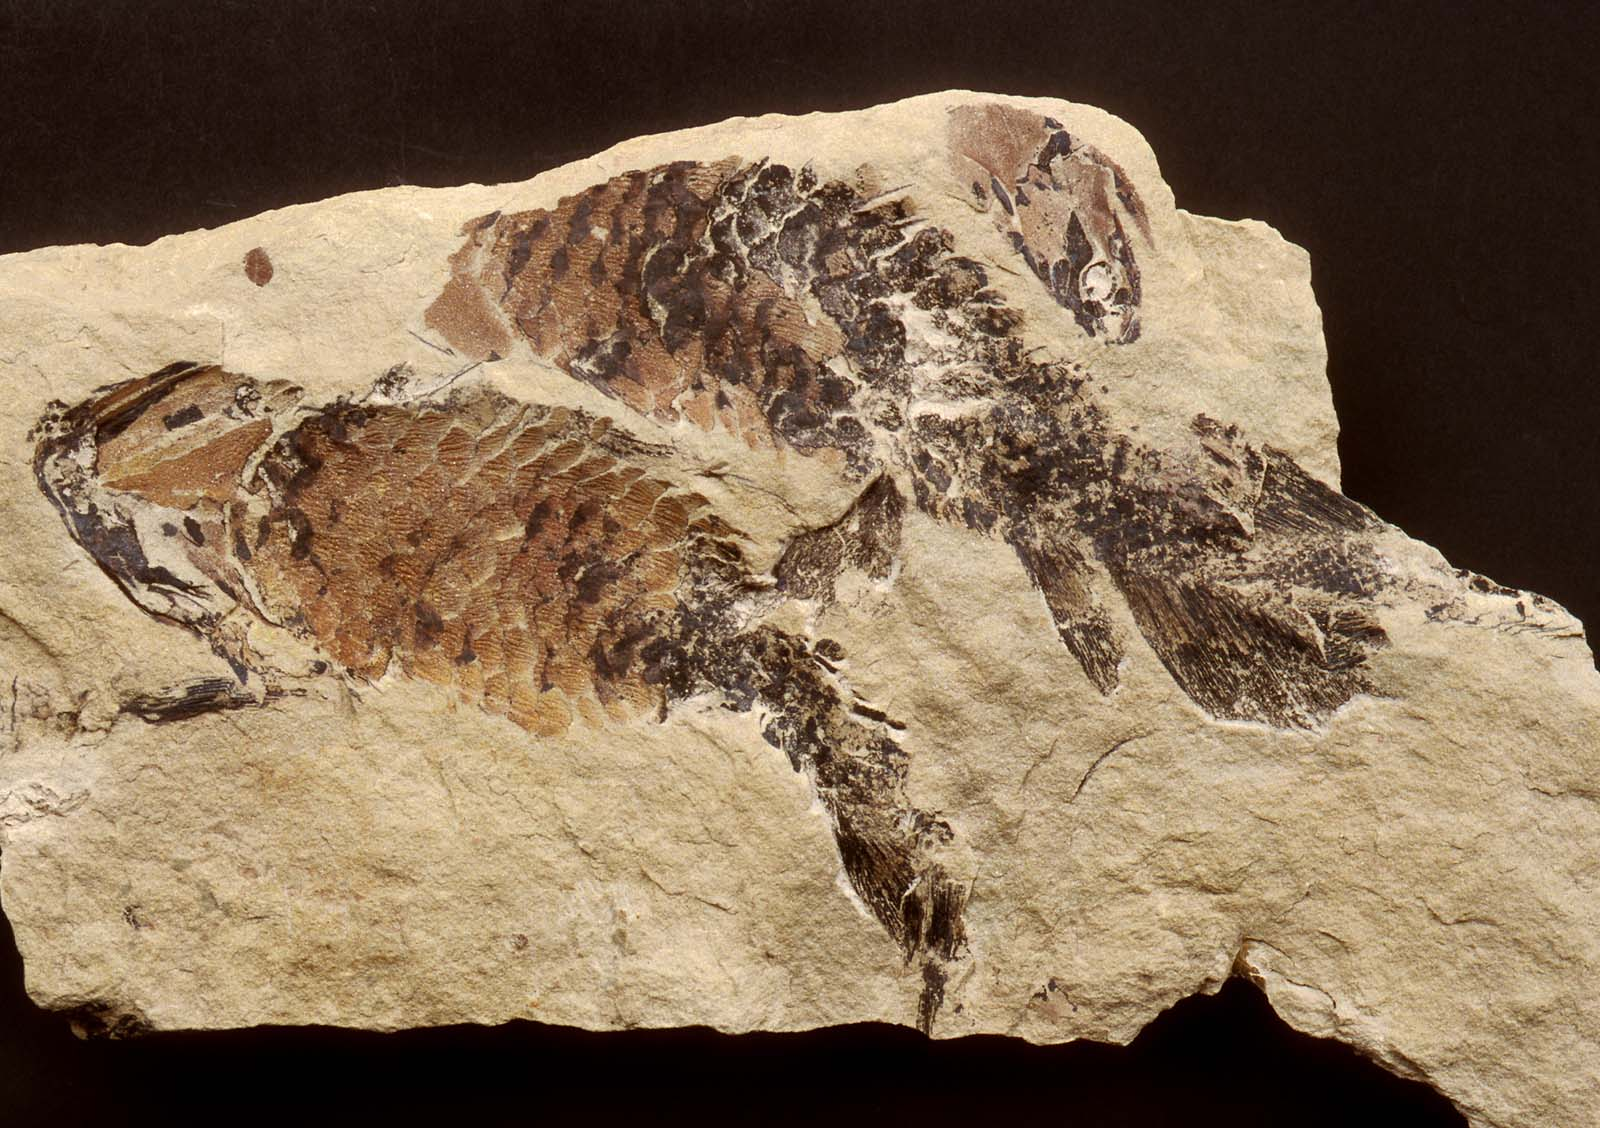 photon of a rock with fossilised remains of two fish